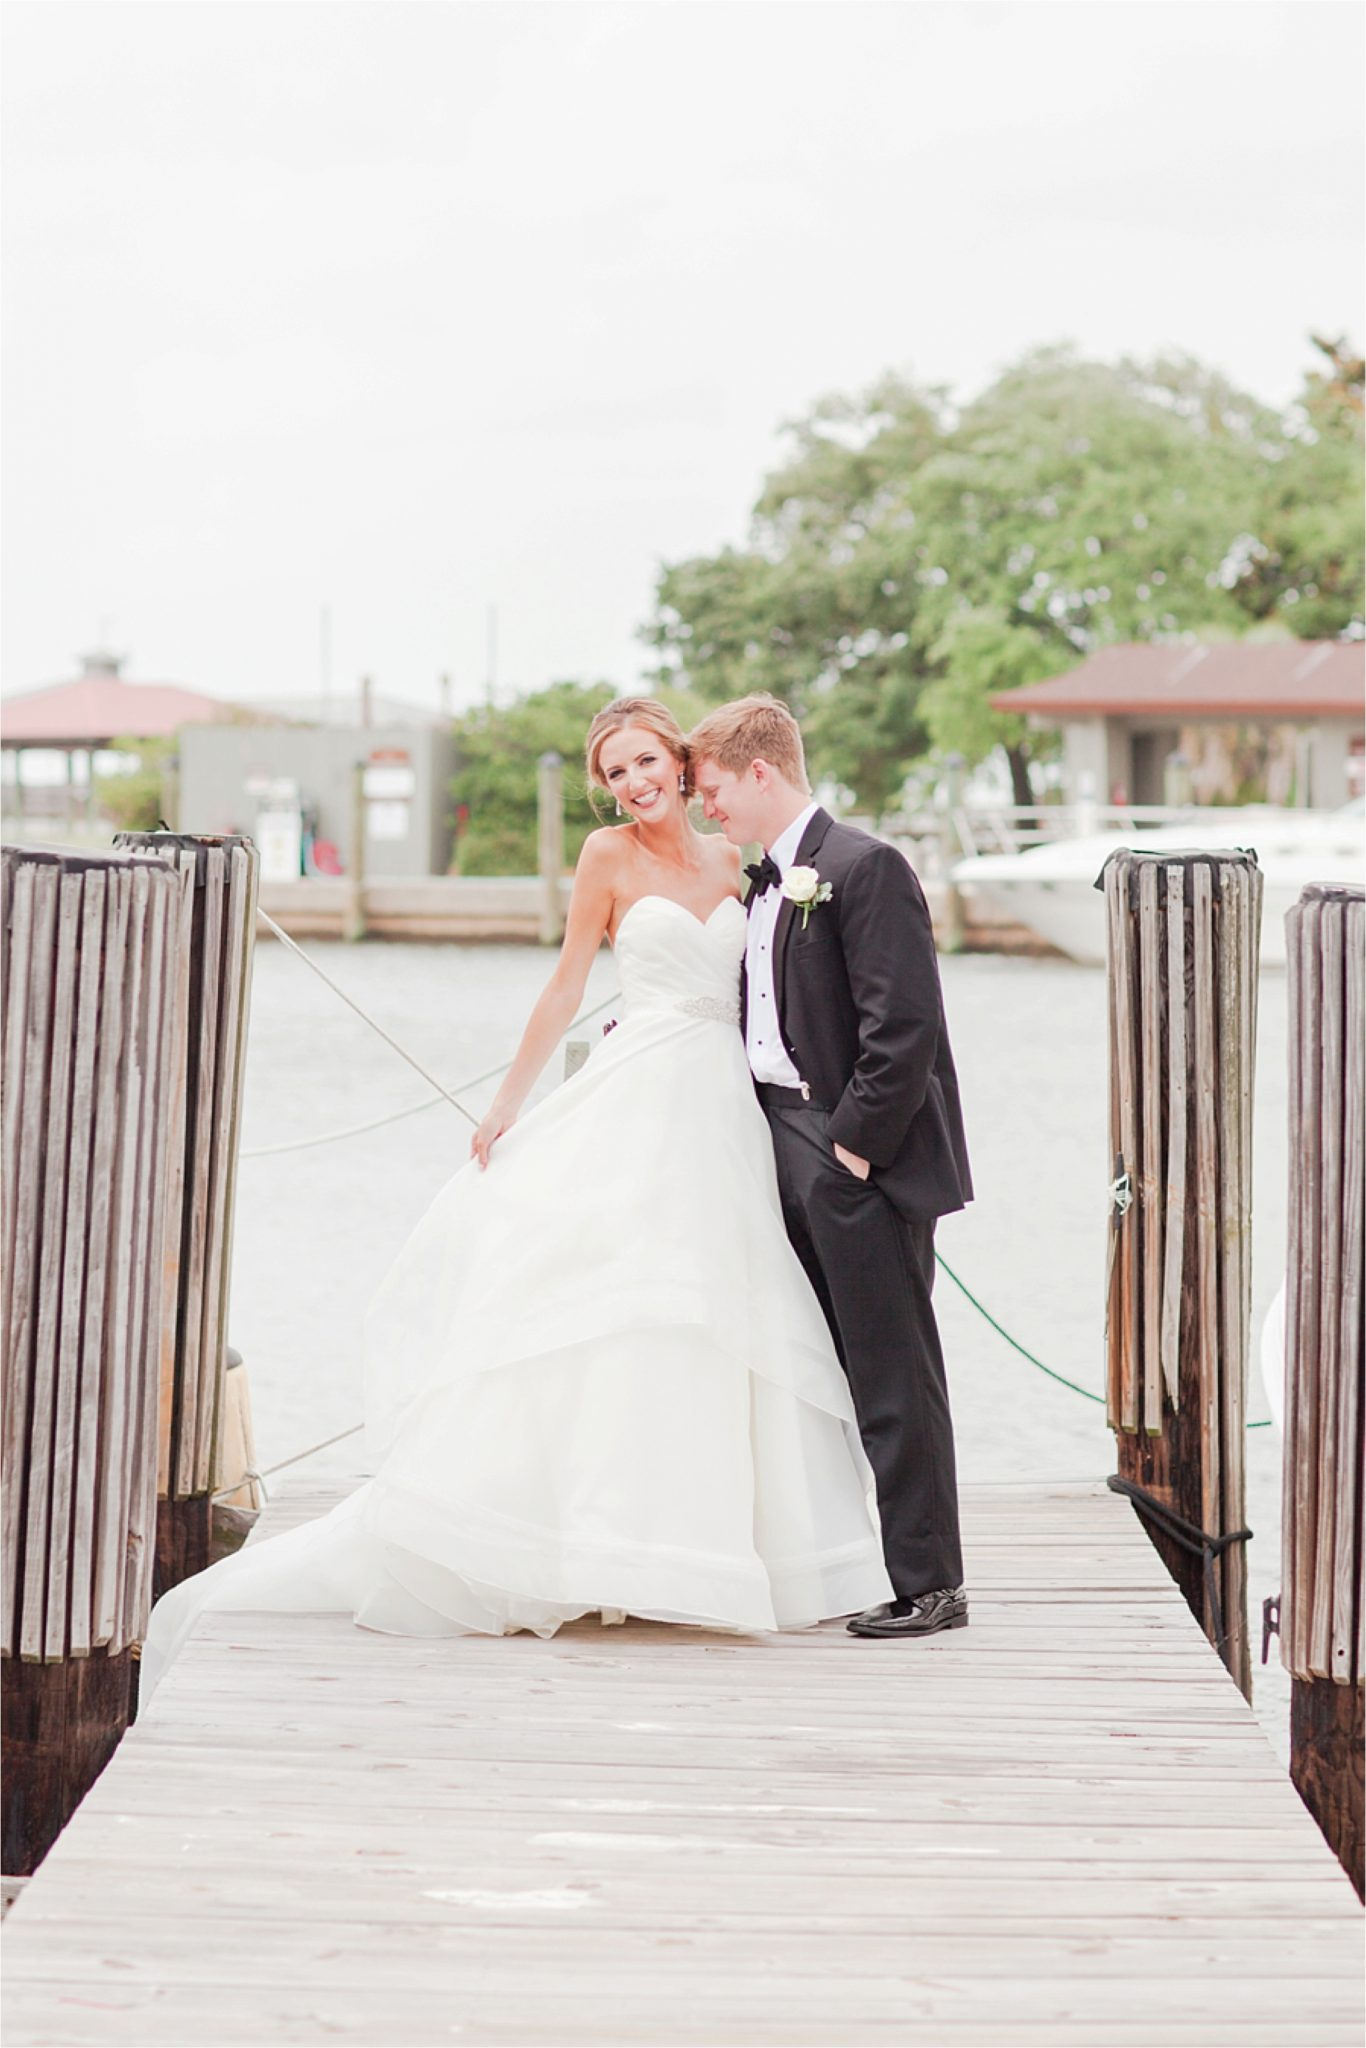 Classy Light Blue Wedding-Point Clear, Alabama Wedding Photographer-Wedding dress-Wedding gown-Bride and groom-First look